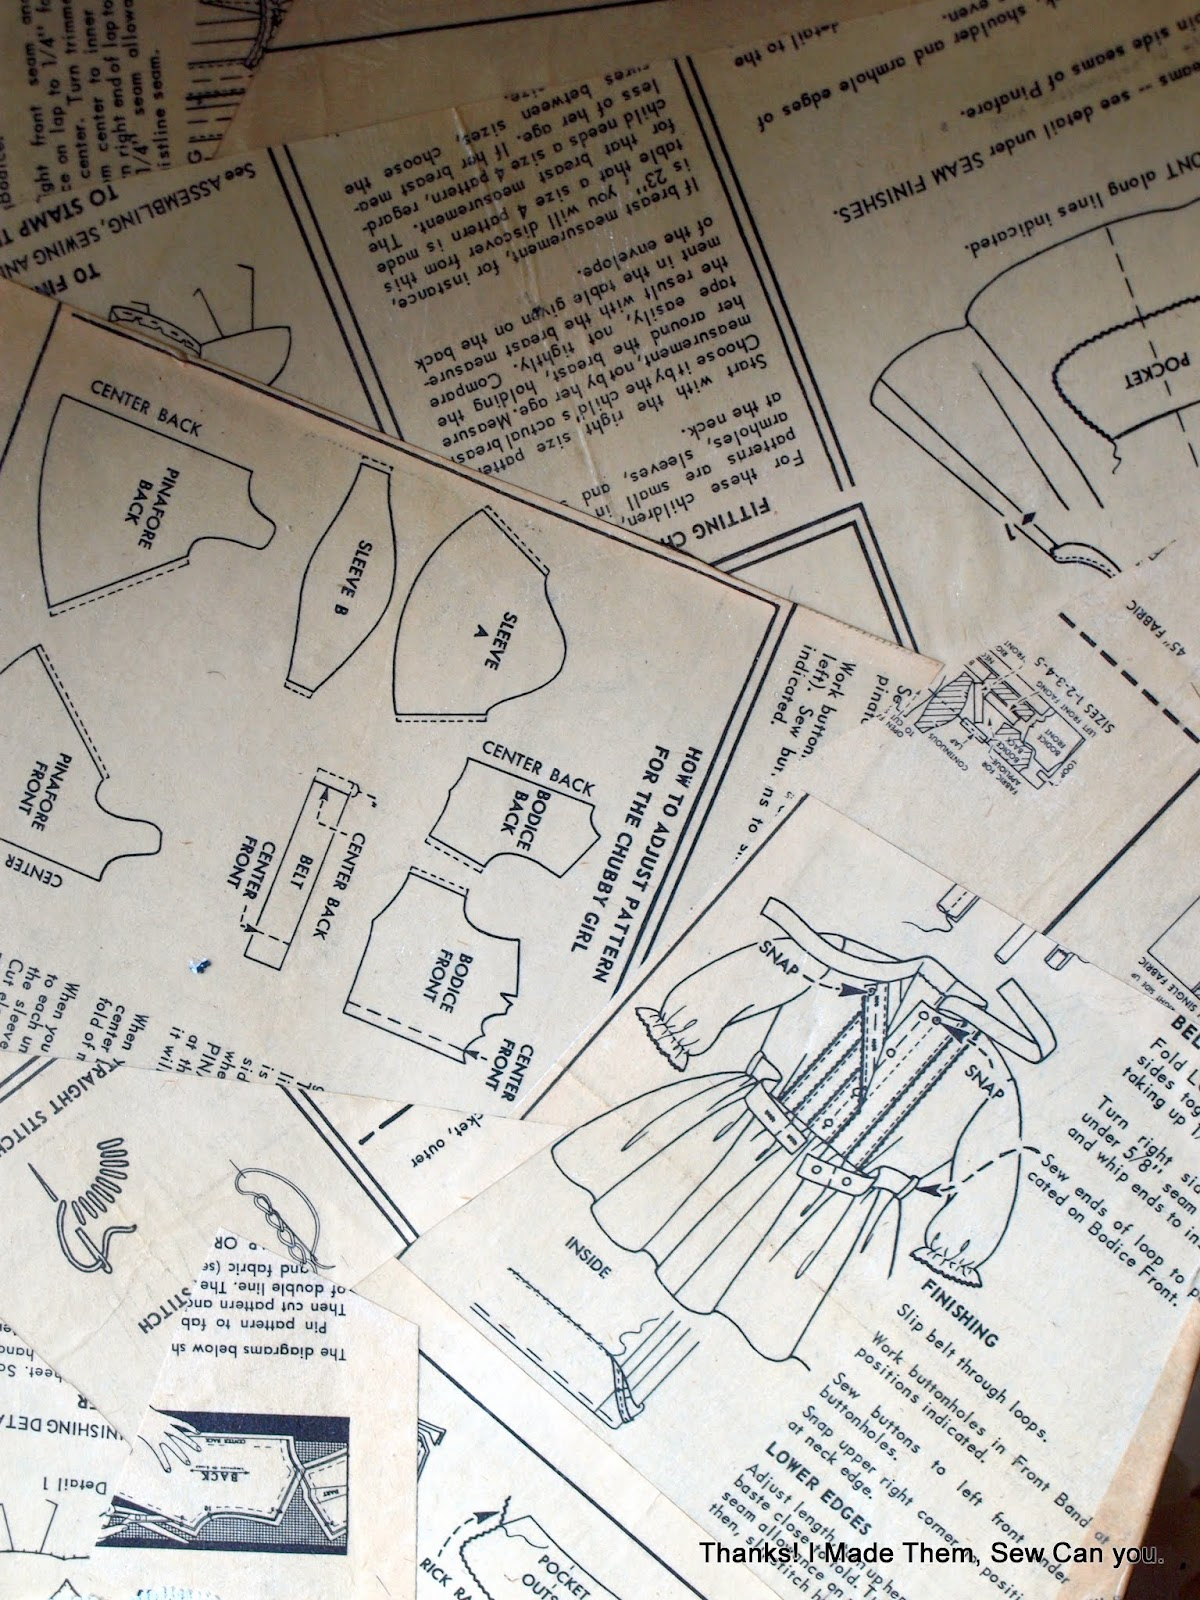 Thanks! I made them!: Sewing Pattern Mannequin Wall Art